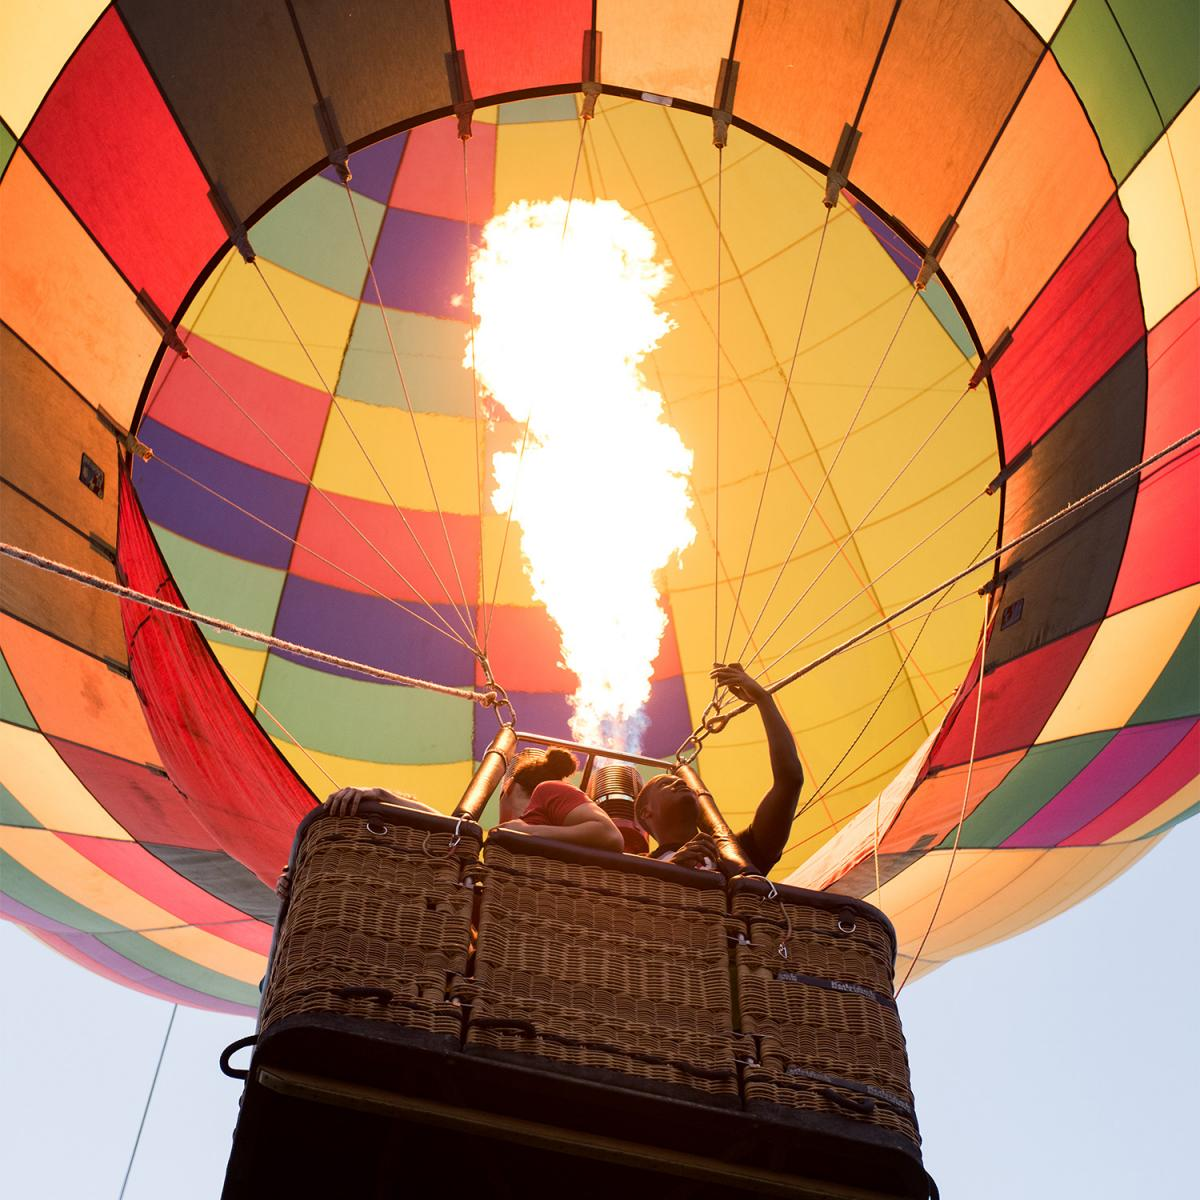 Doo Dah Day hot air balloon